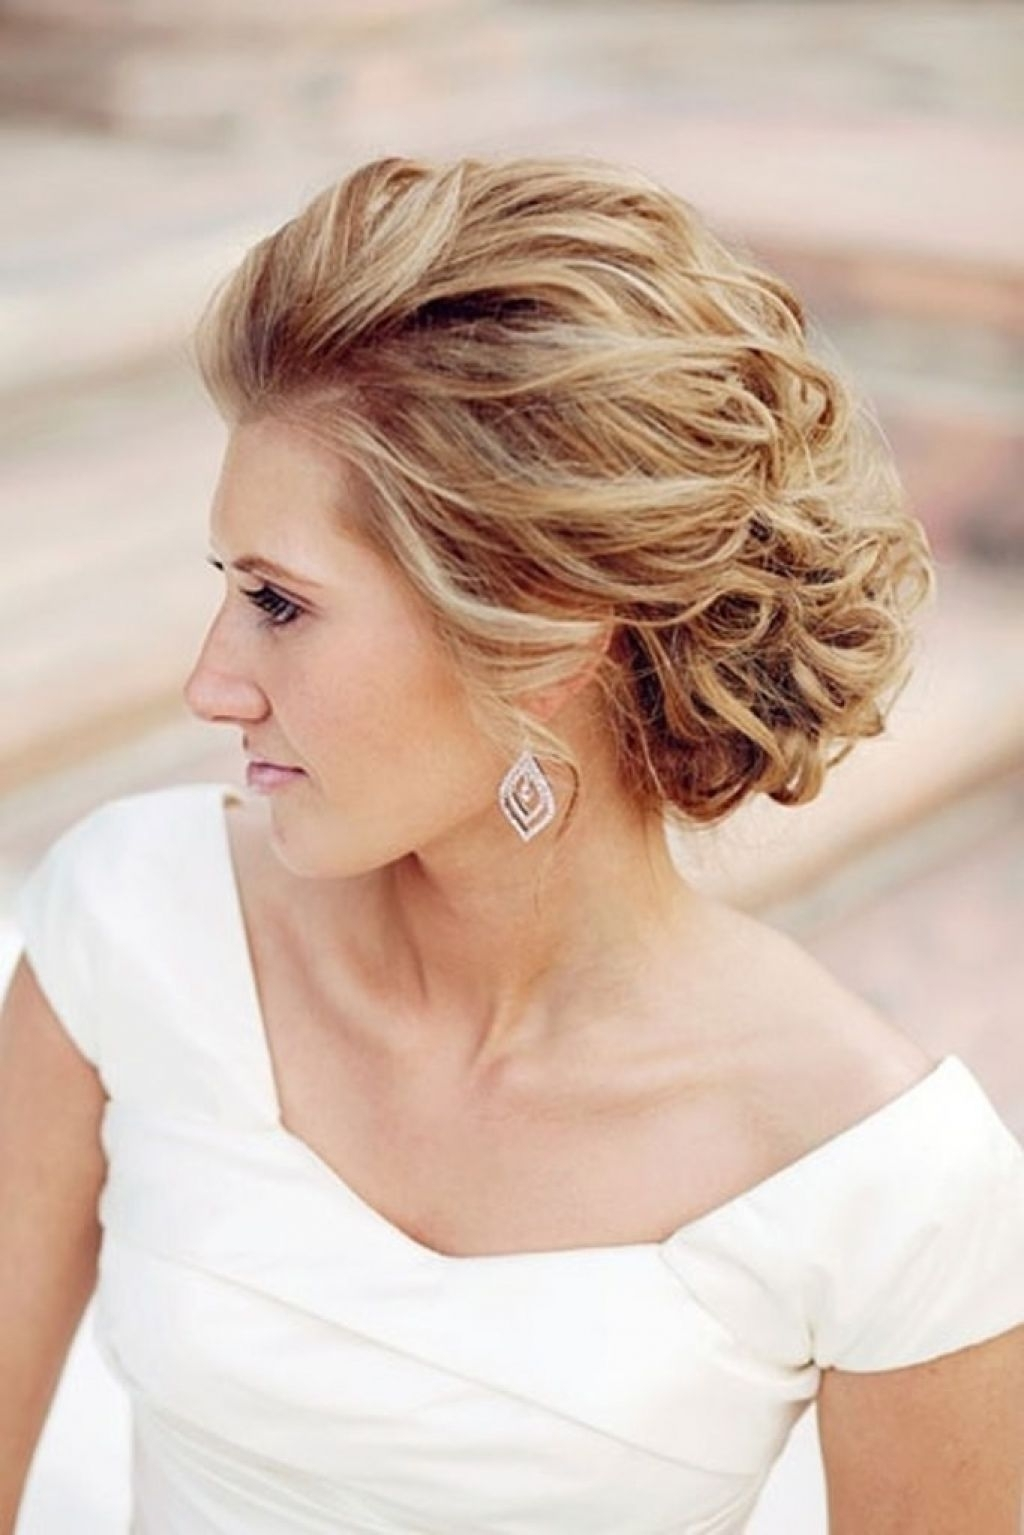 Bridesmaid Hairstyles For Medium Length Hair Wedding Design Ideas With Well Known Wedding Hairstyles For Chin Length Hair (View 5 of 15)